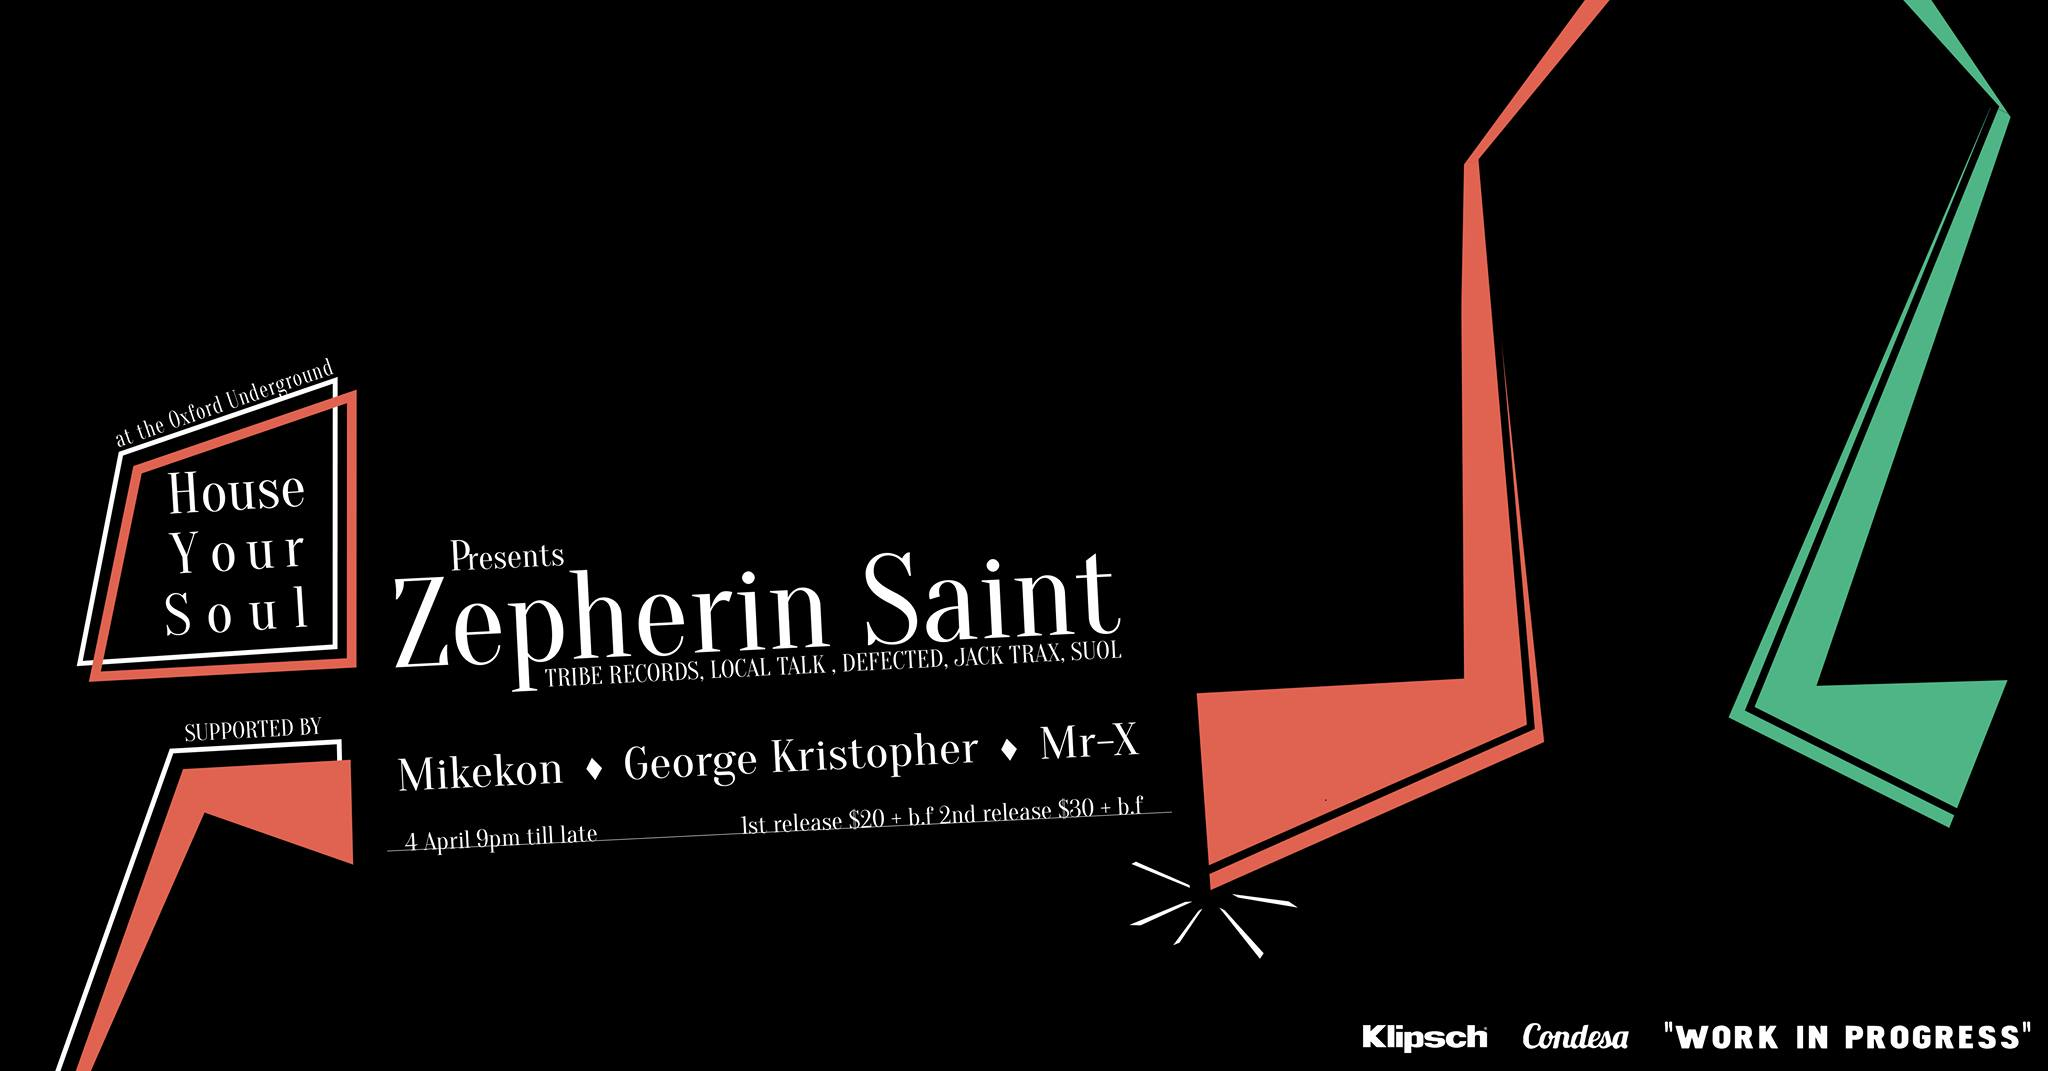 House Your Soul presents Zepherin Saint